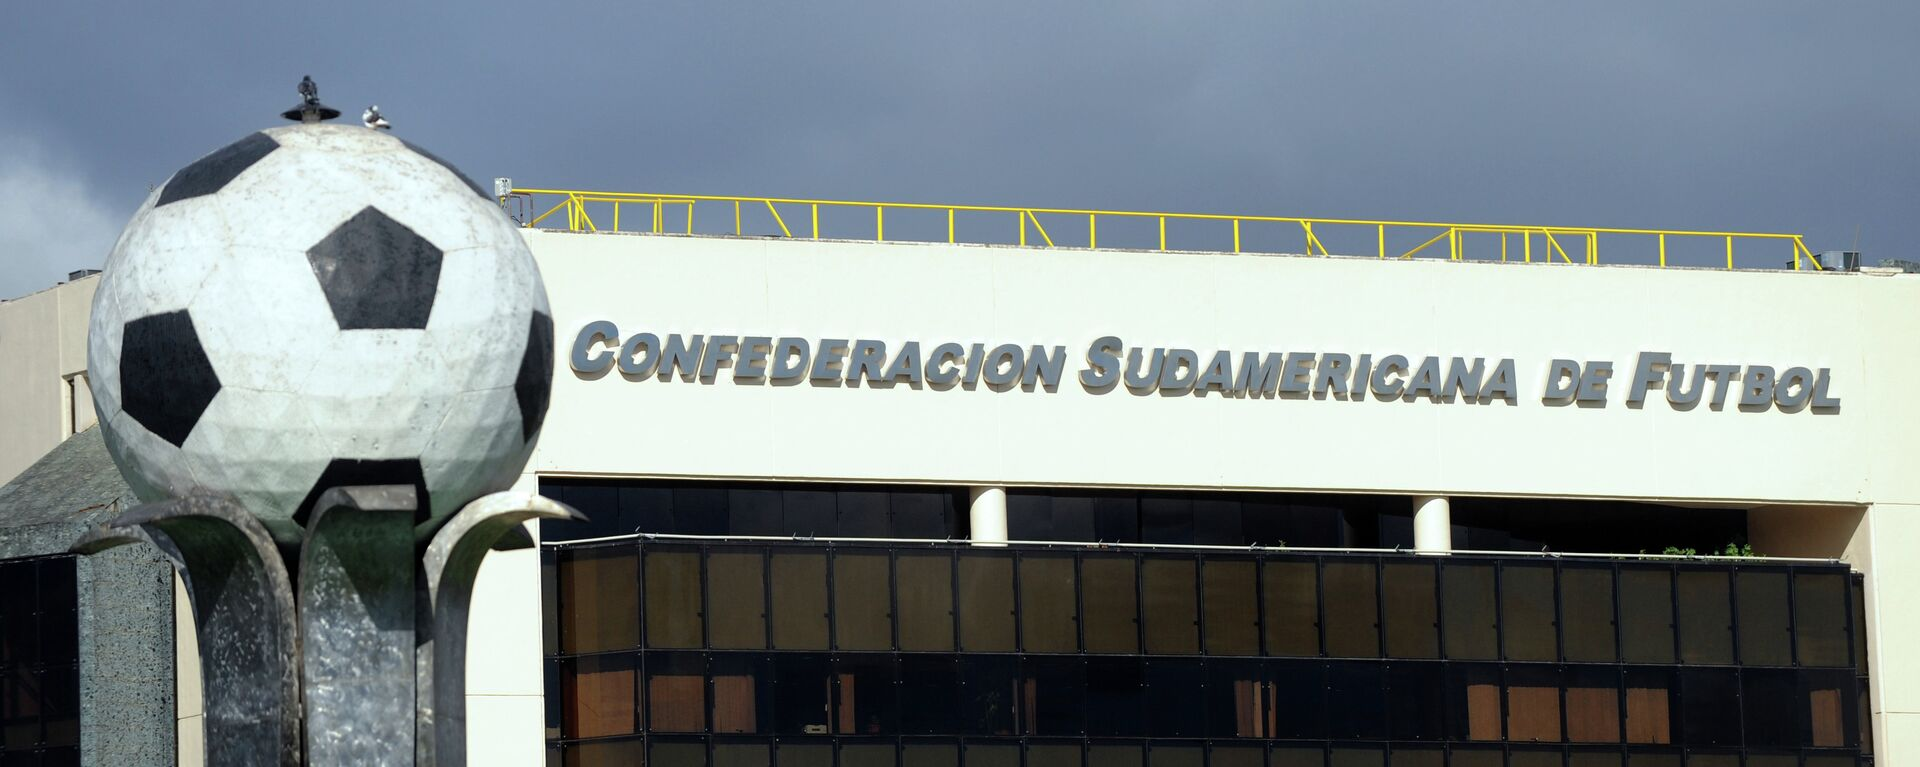 The South American Football Confederation (Conmebol) headquarters on May 28, 2015 in Luque, Paraguay.  - Sputnik Mundo, 1920, 04.05.2021